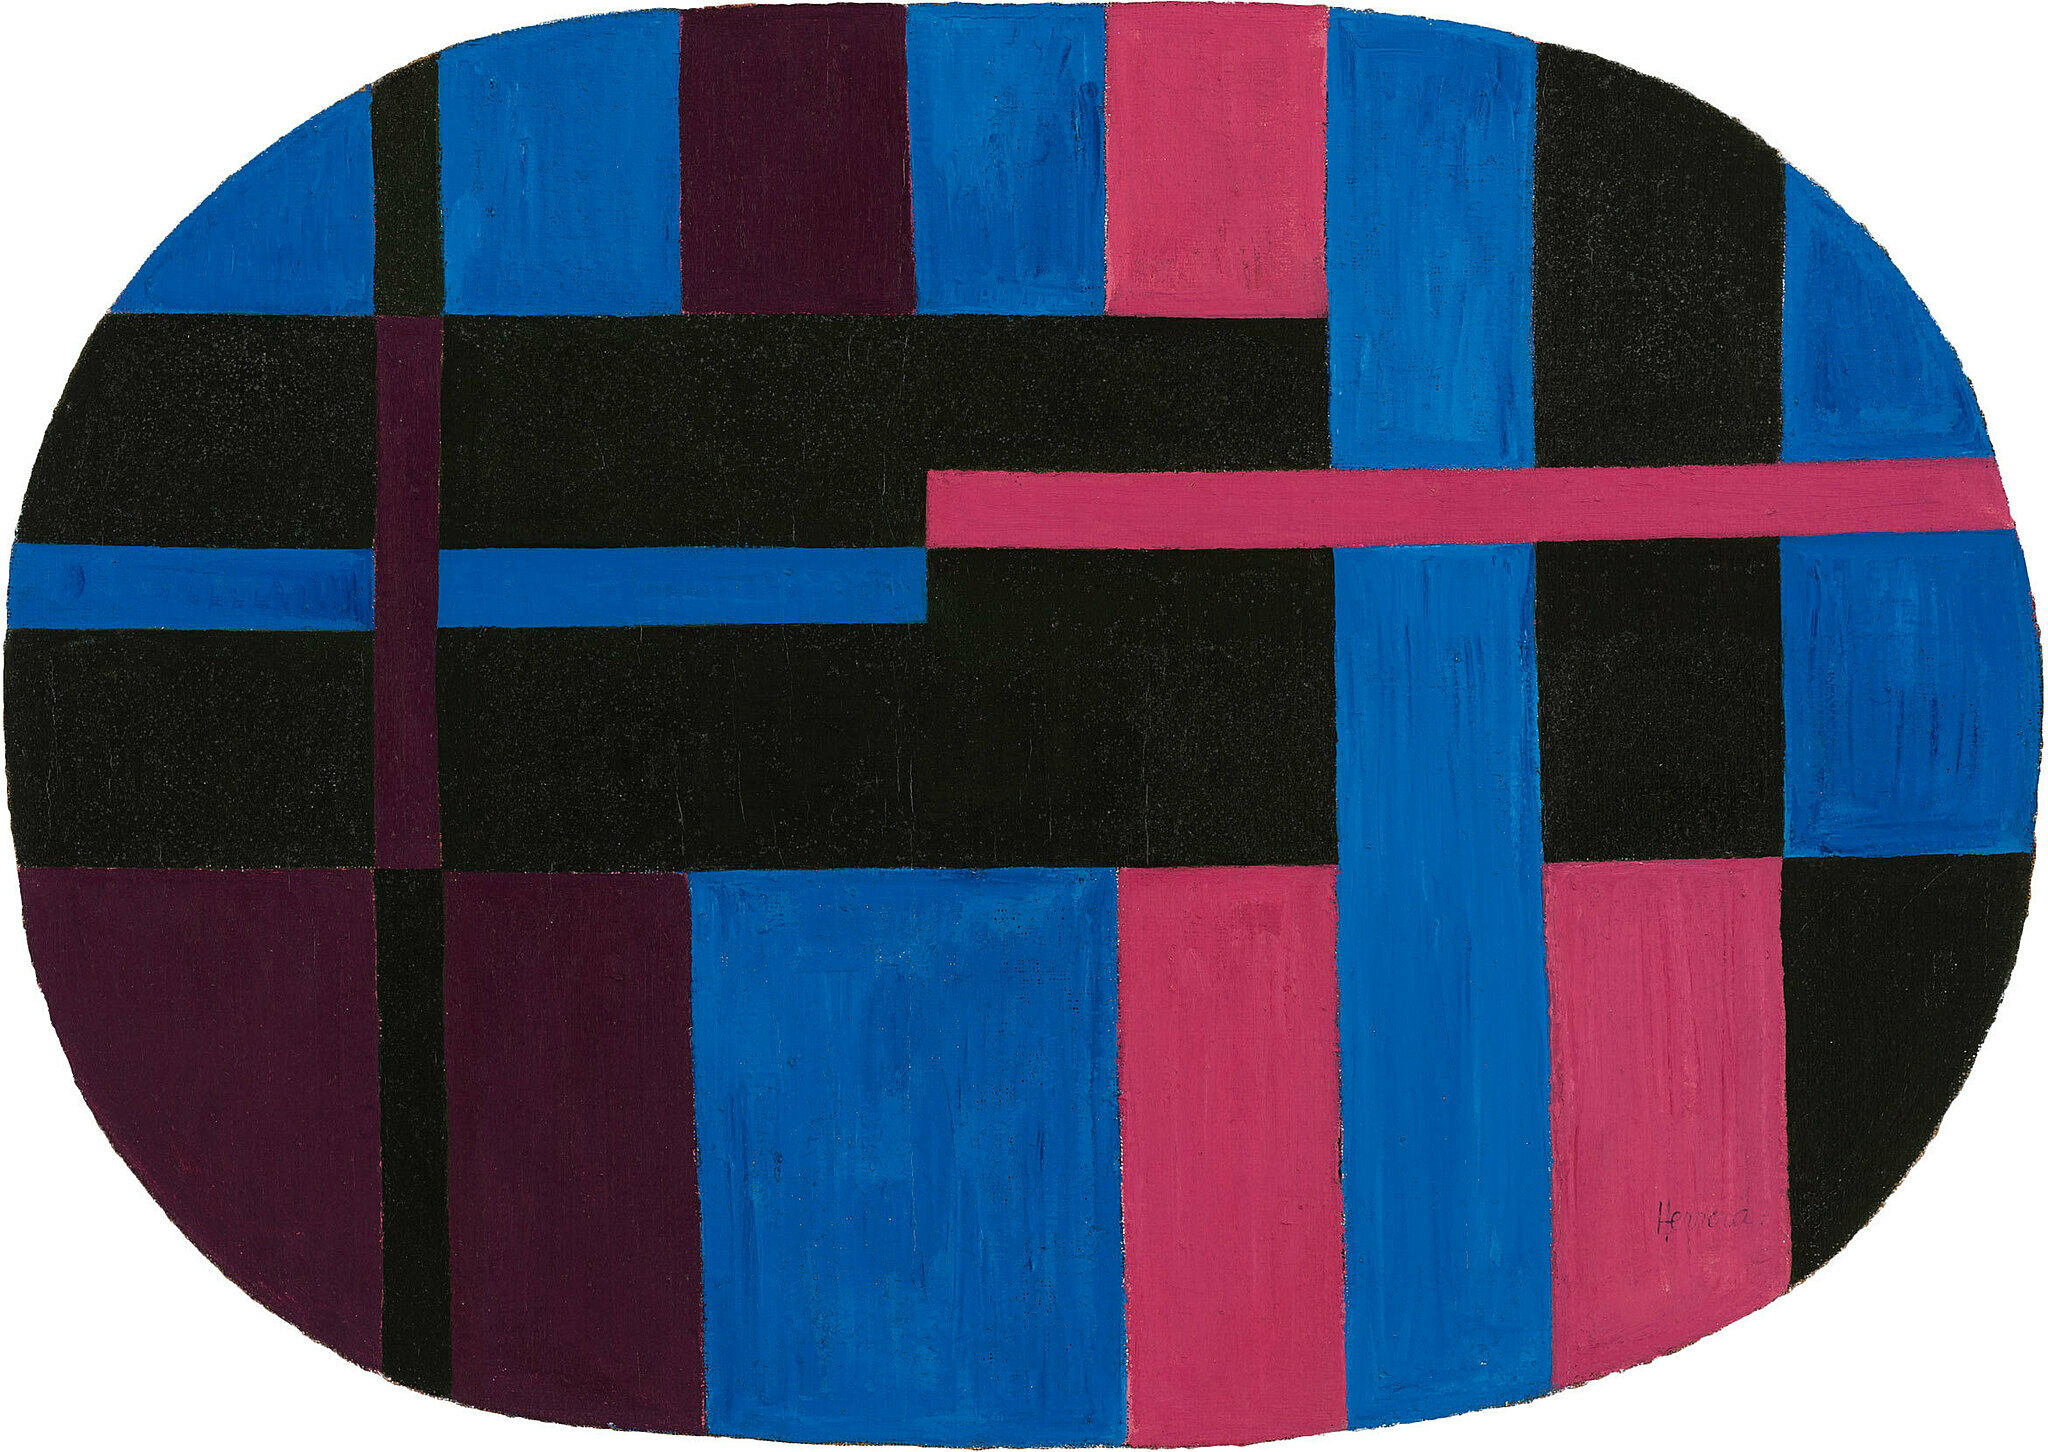 A black, red, maroon, and blue artwork by Carmen Herrera.